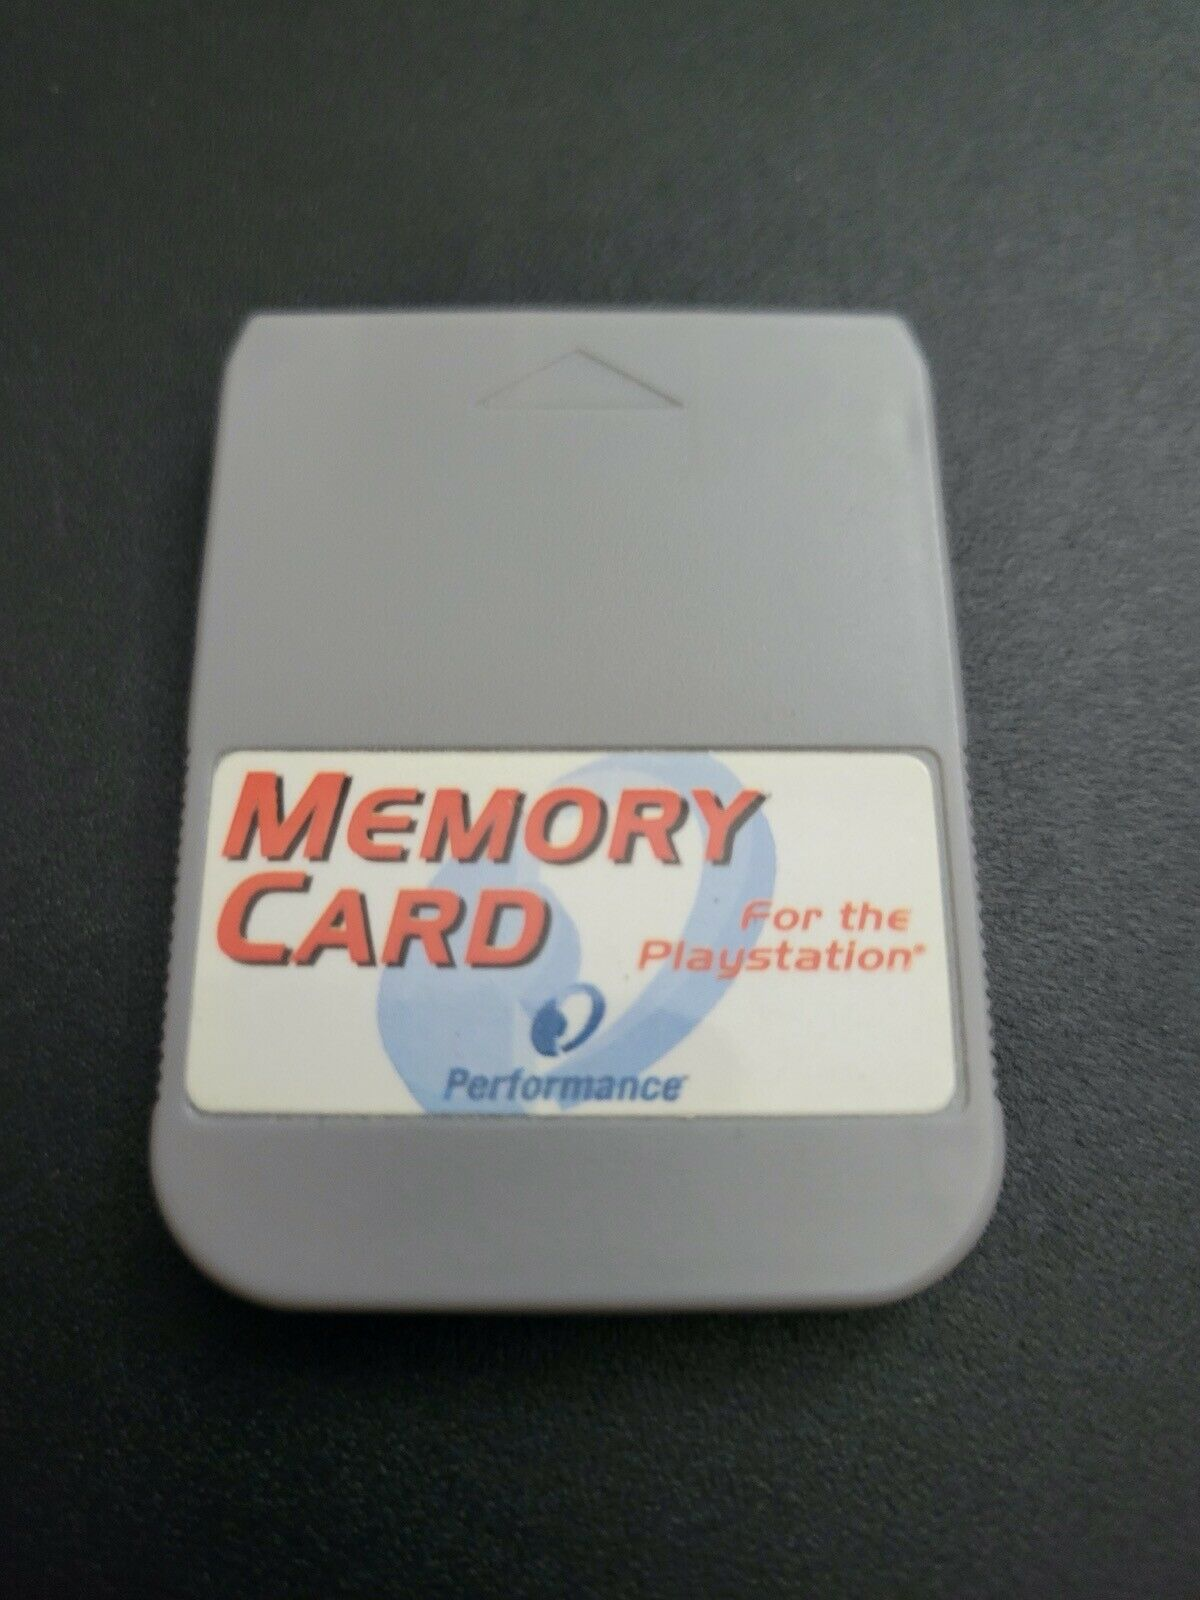 Performance Gray/White 1MB Sony Playstation 1 PS1 Memory Card Vy Good Condition